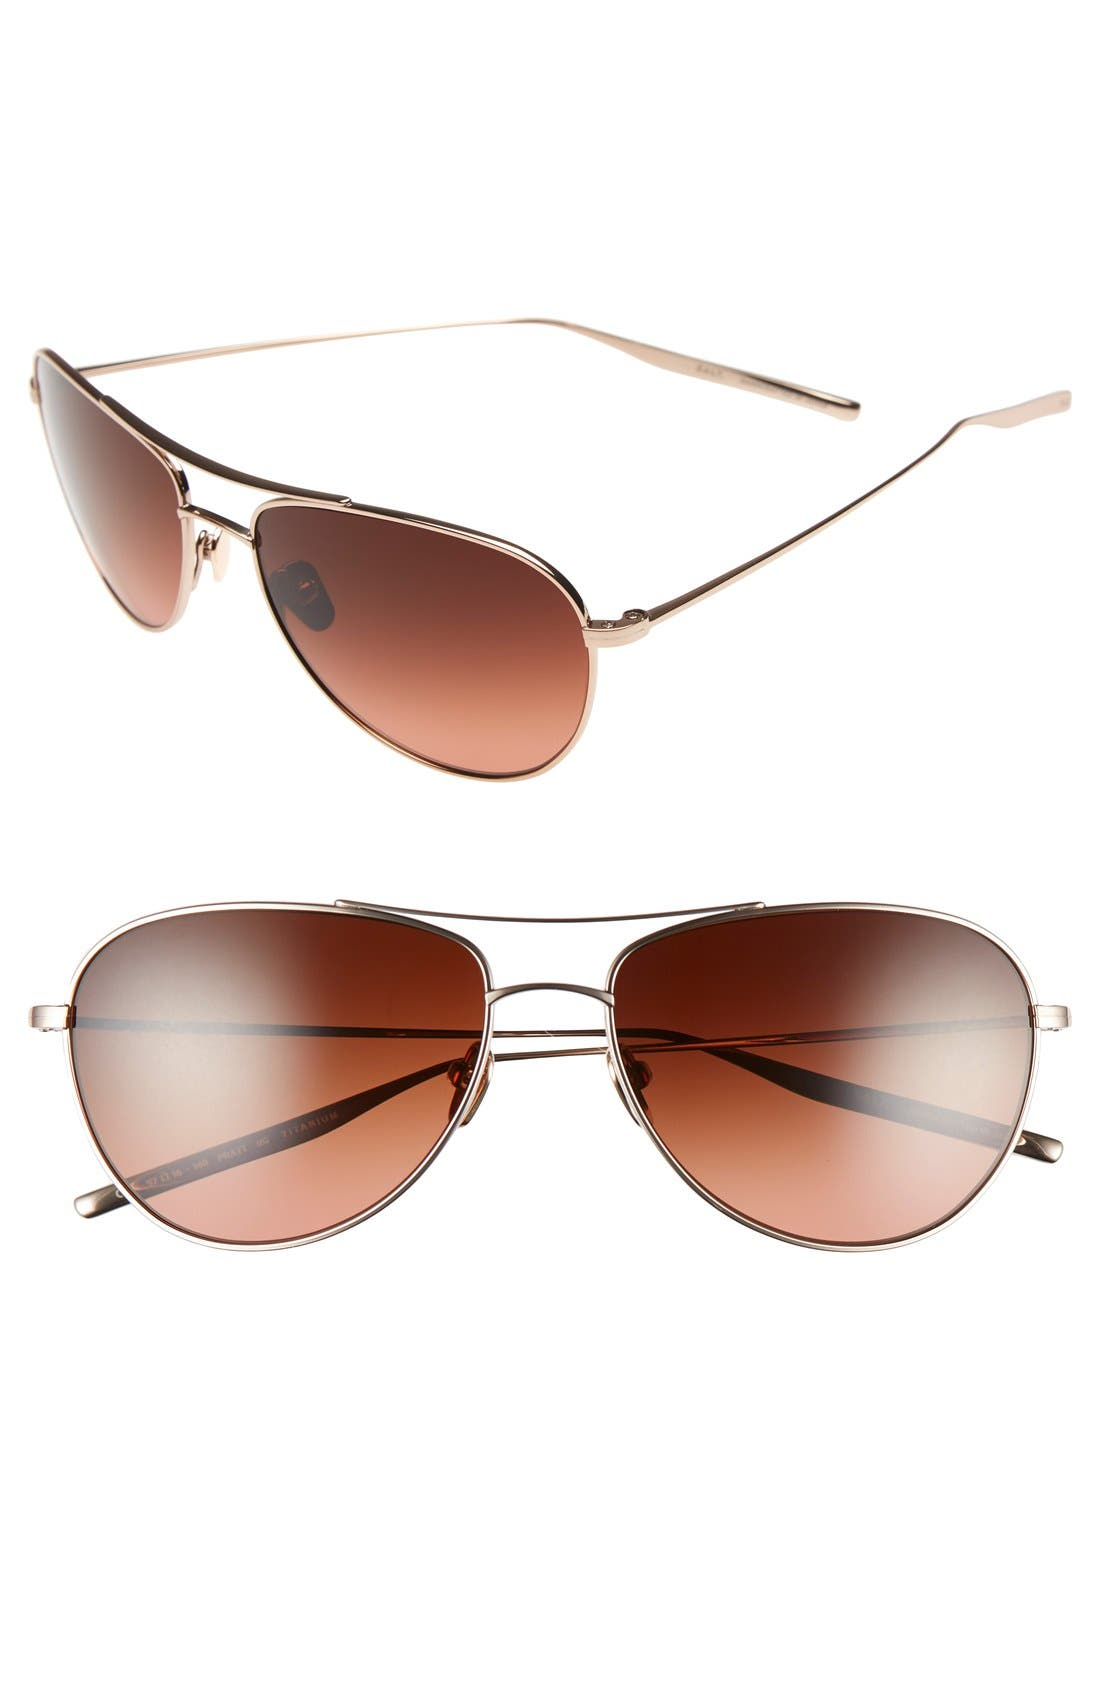 SALT Pratt 57mm Aviator Sunglasses